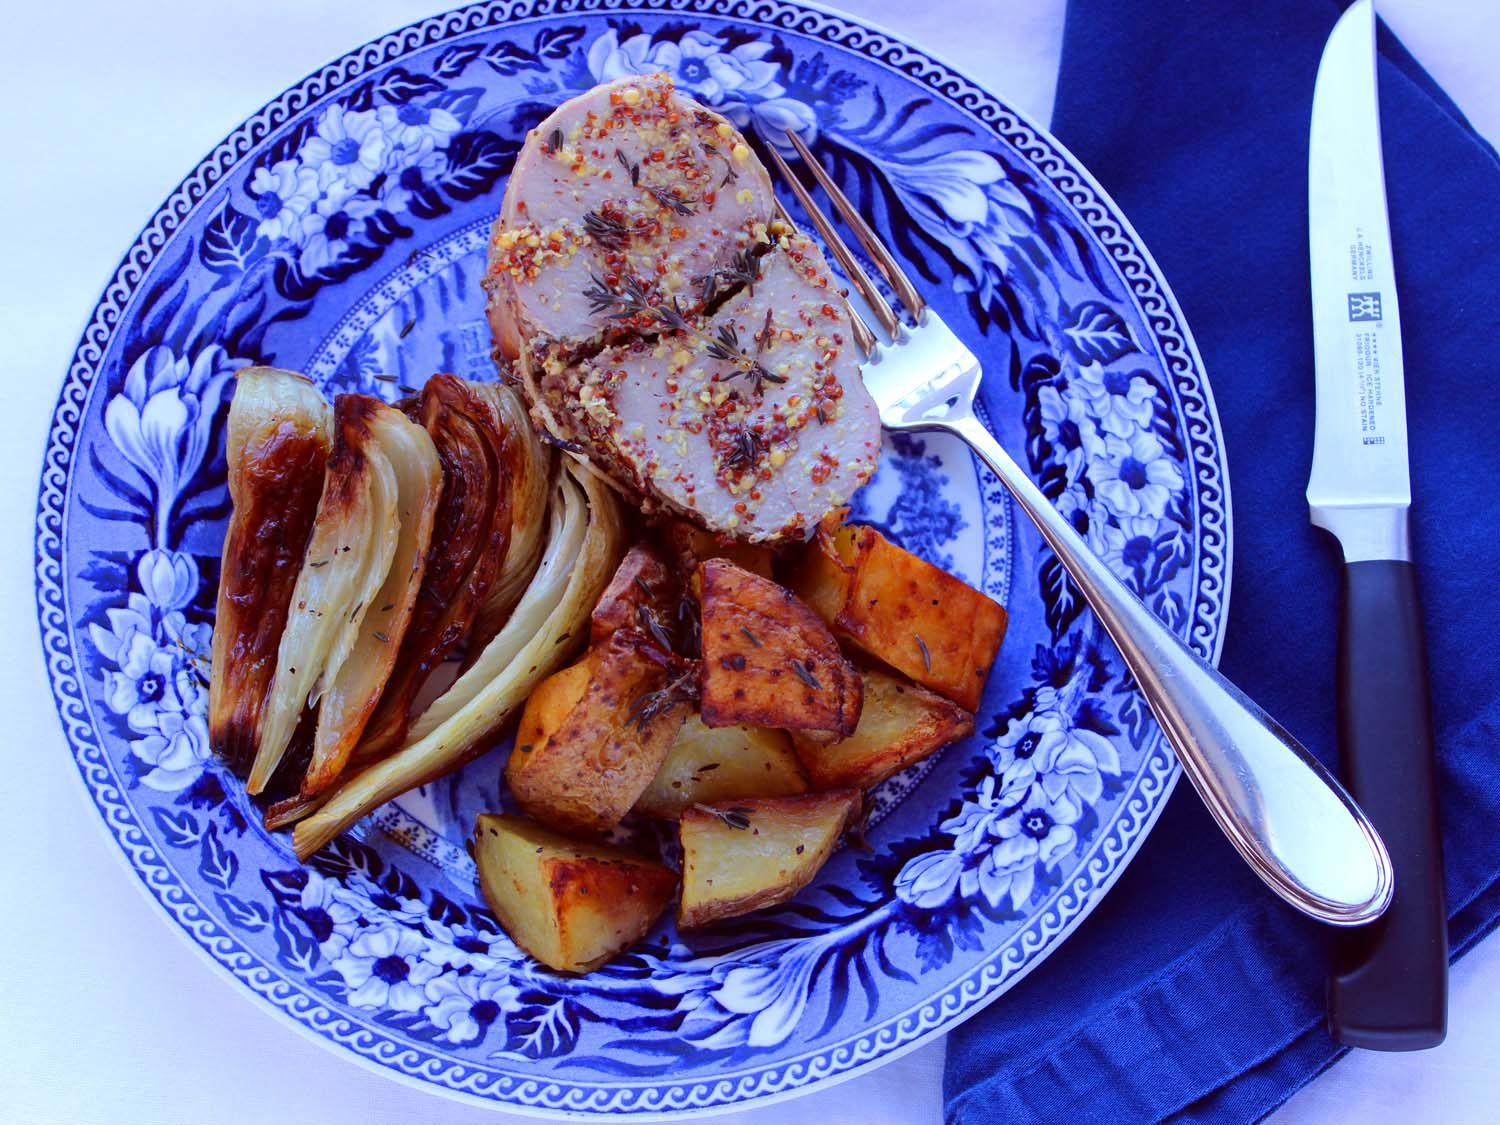 Roasted Pork Loin with Fennel  | Image:  Laura Messersmith